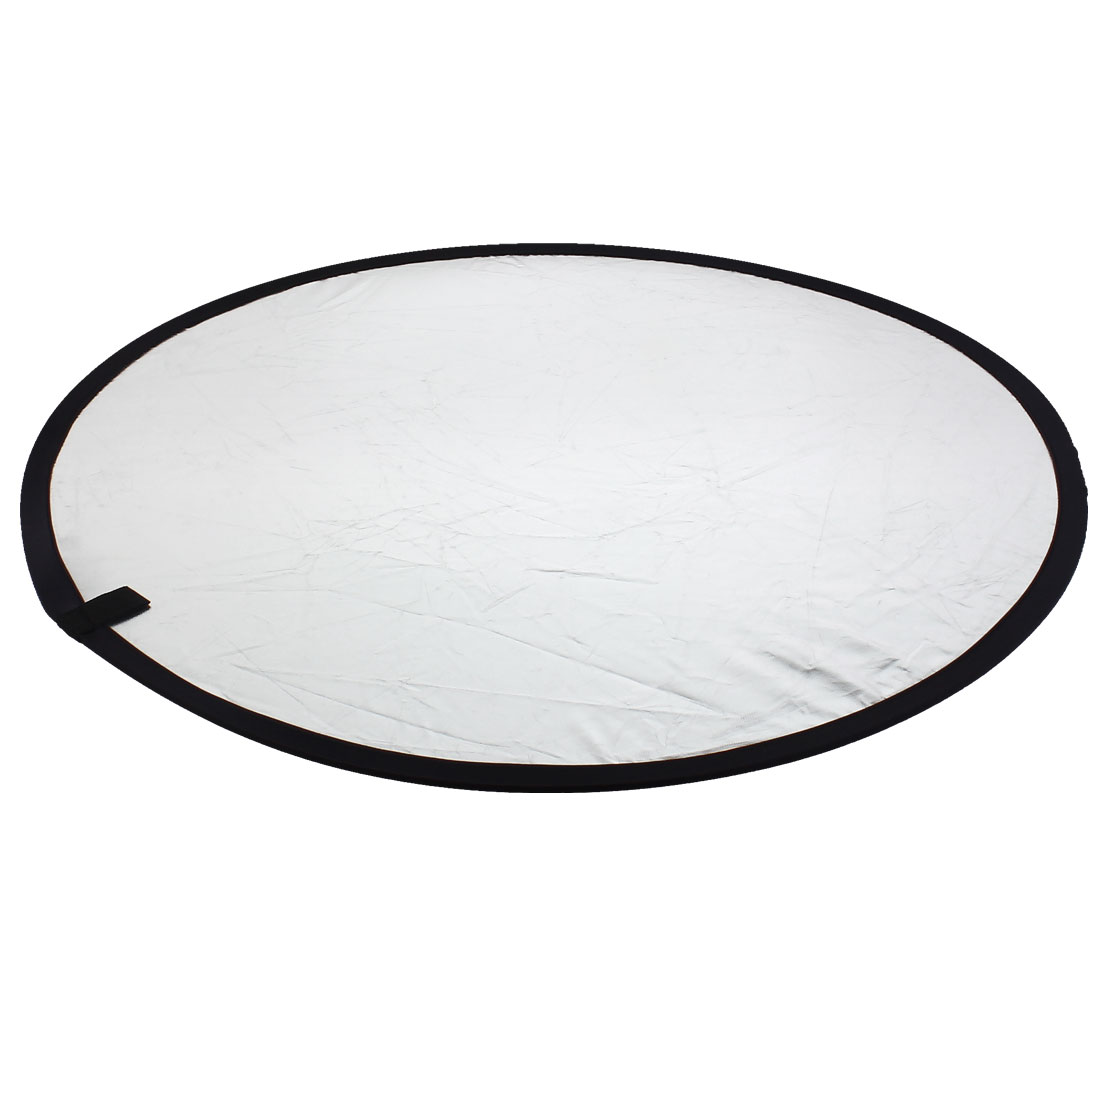 Photography Round White Silver Tone 2 in 1 Light Reflector 80cm